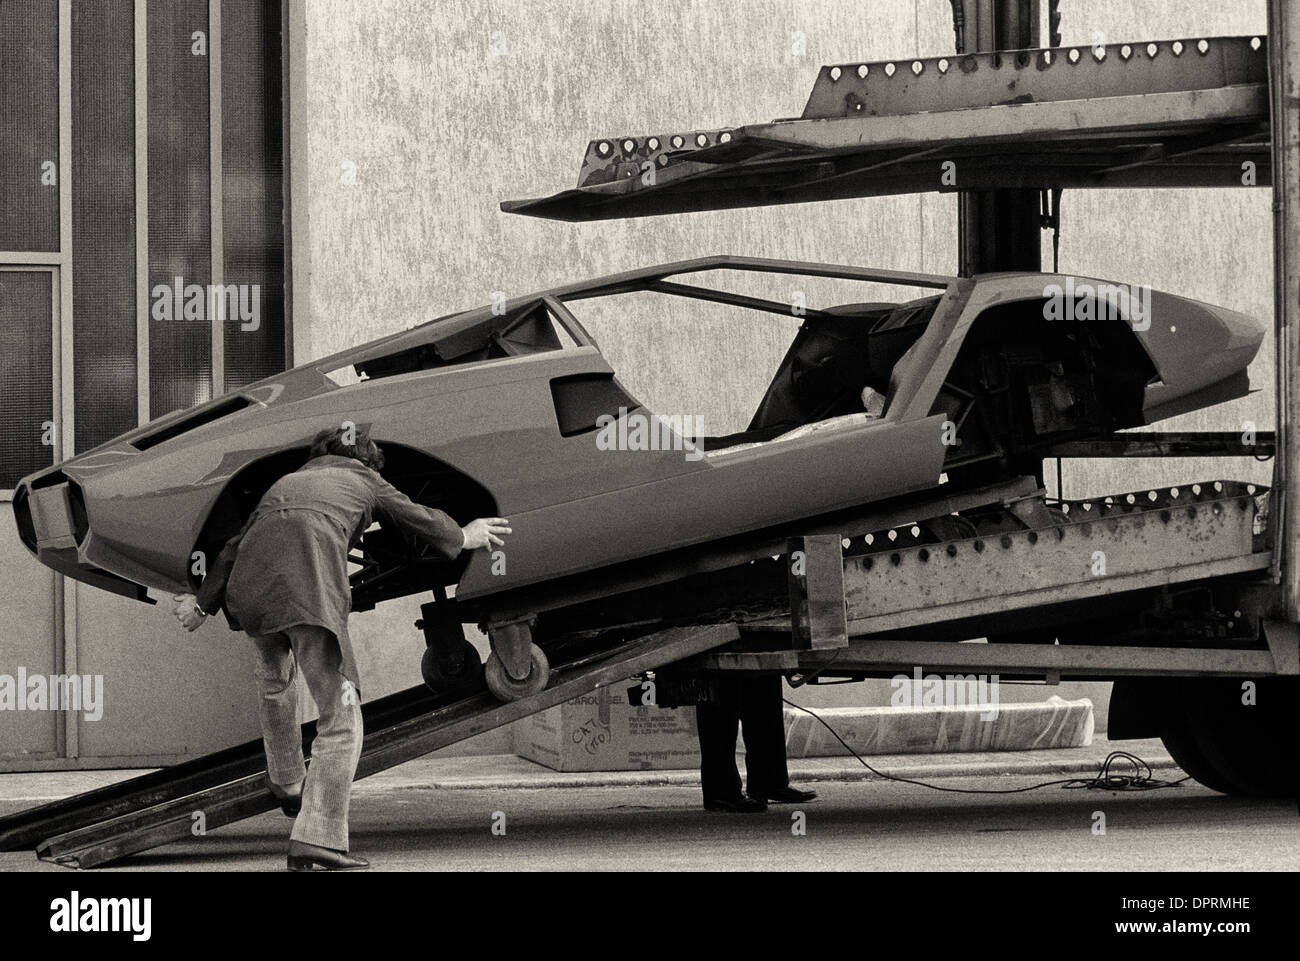 Lamborghini factory at Sant' Agata in Emilia Romagna with Countach LP500 body - Stock Image